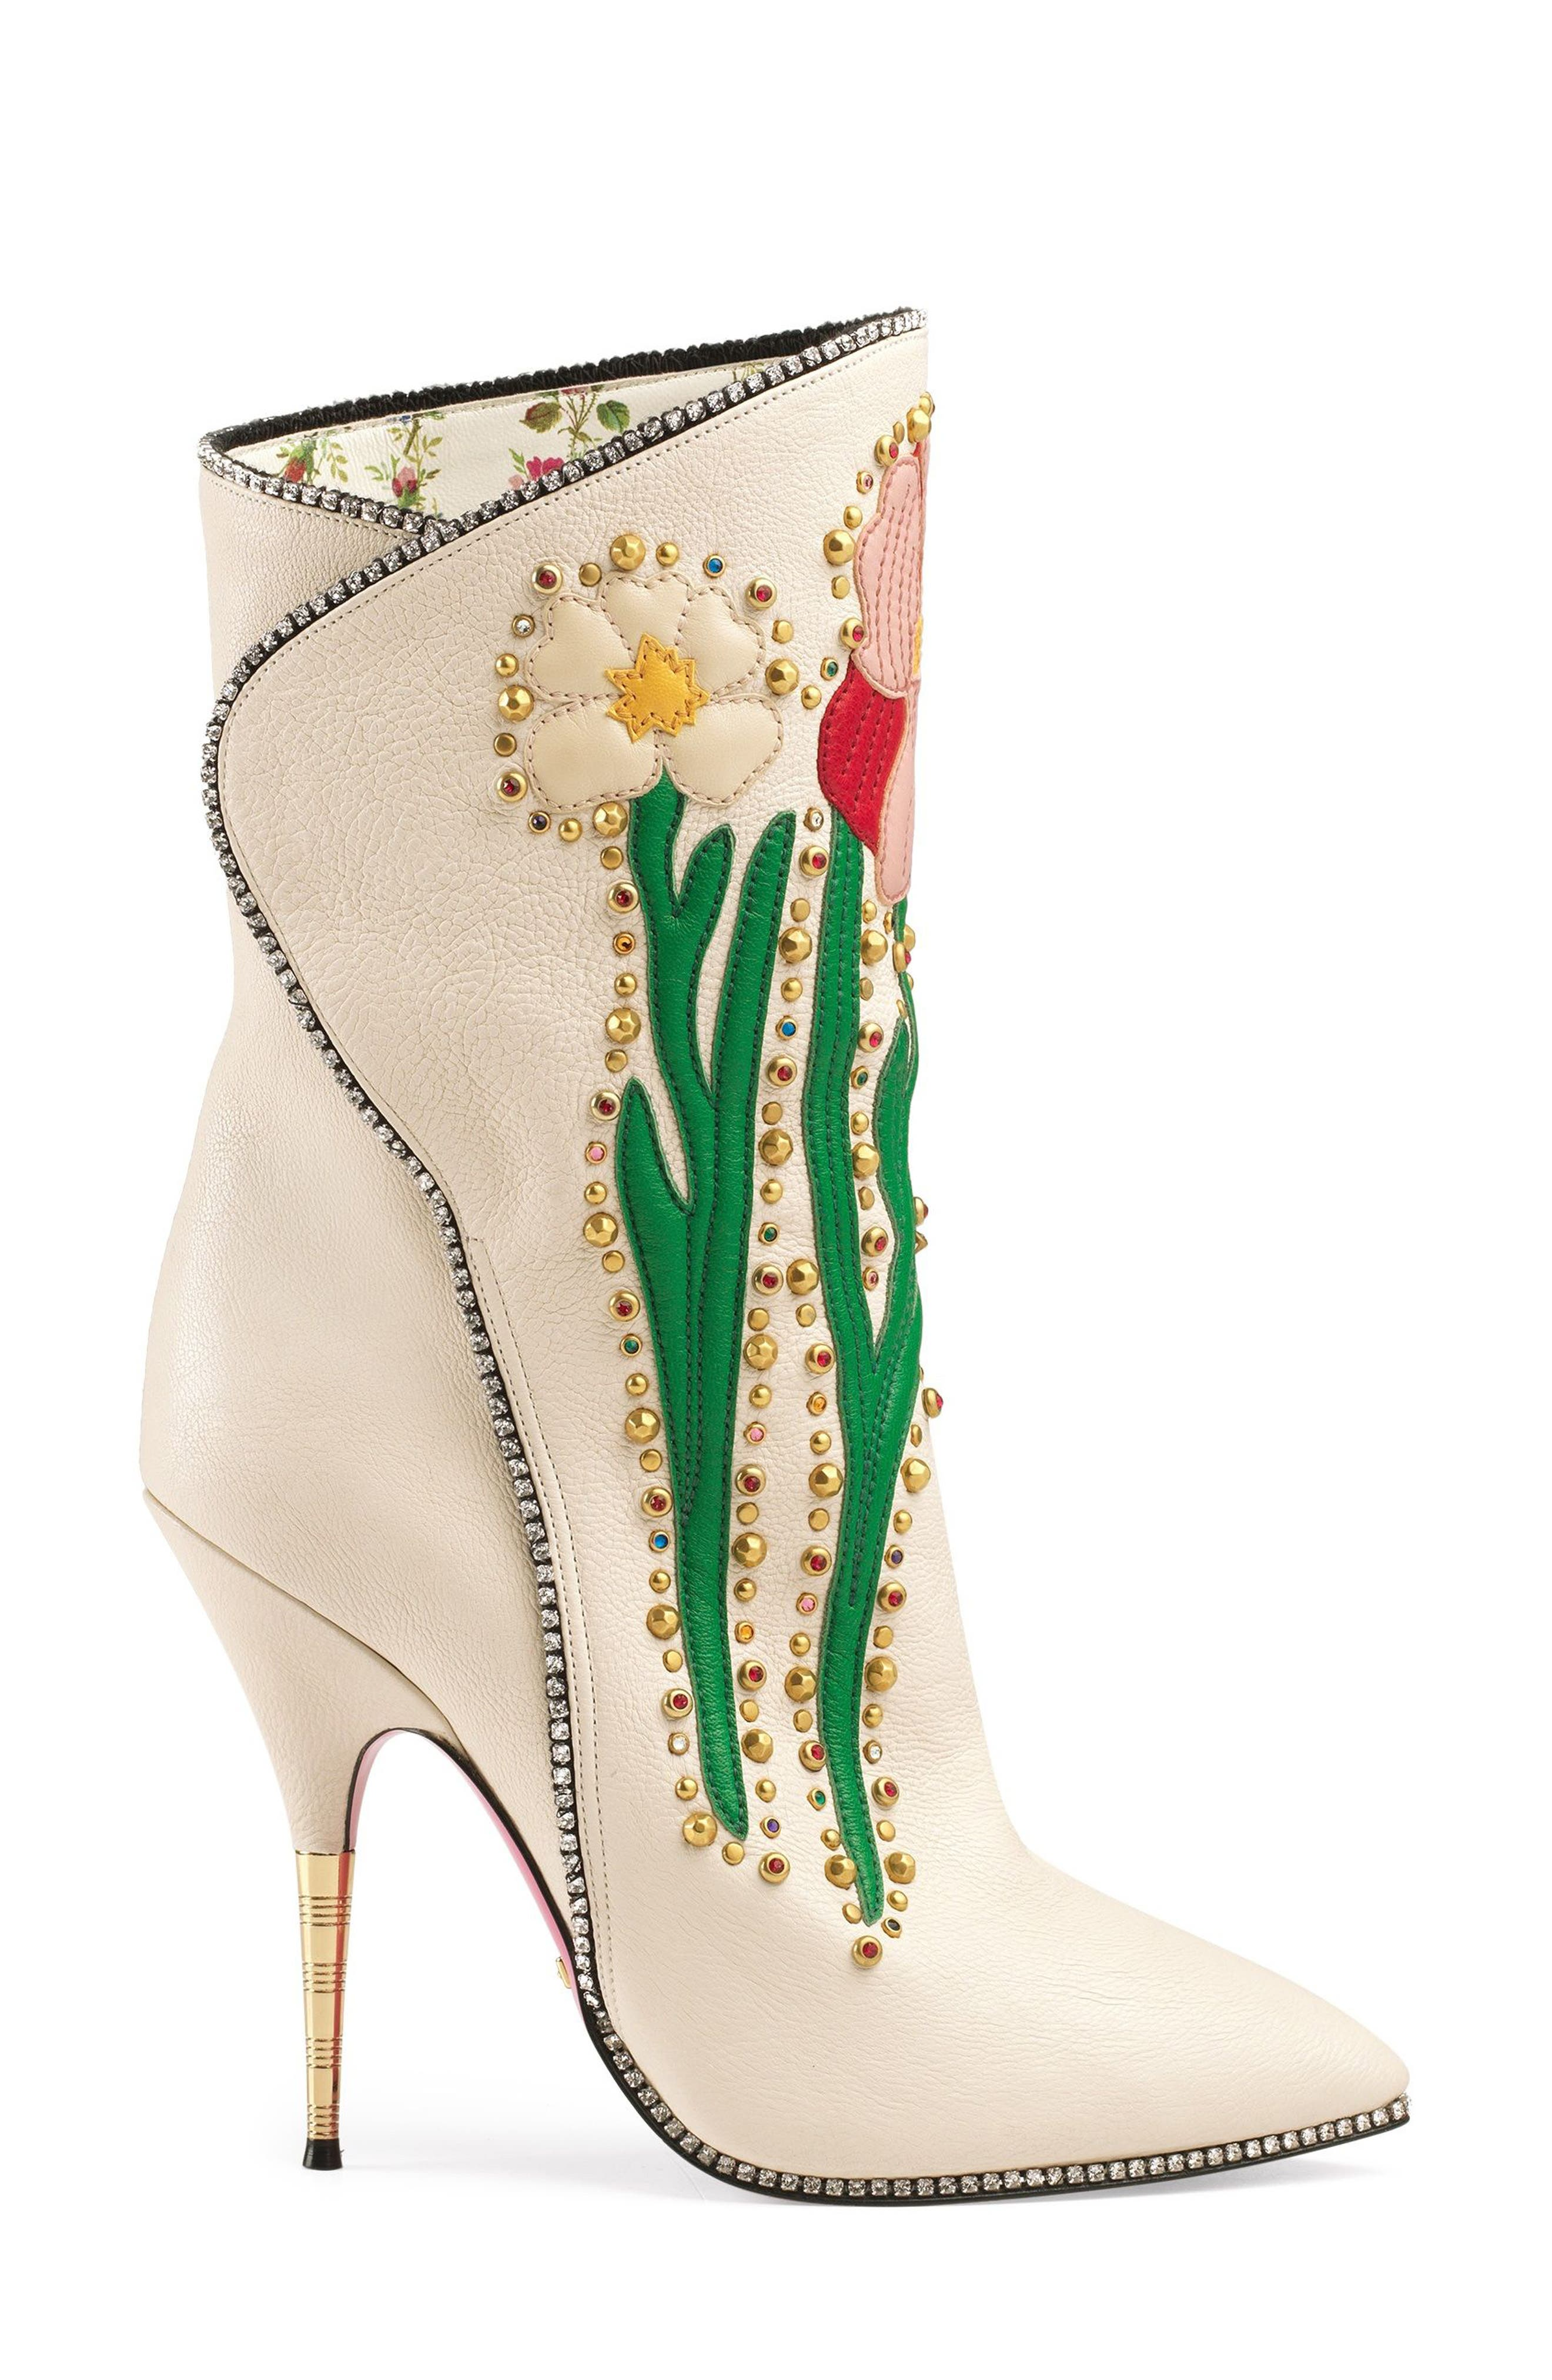 Fosca Floral Embellished Pointy Toe Boot,                             Alternate thumbnail 3, color,                             108